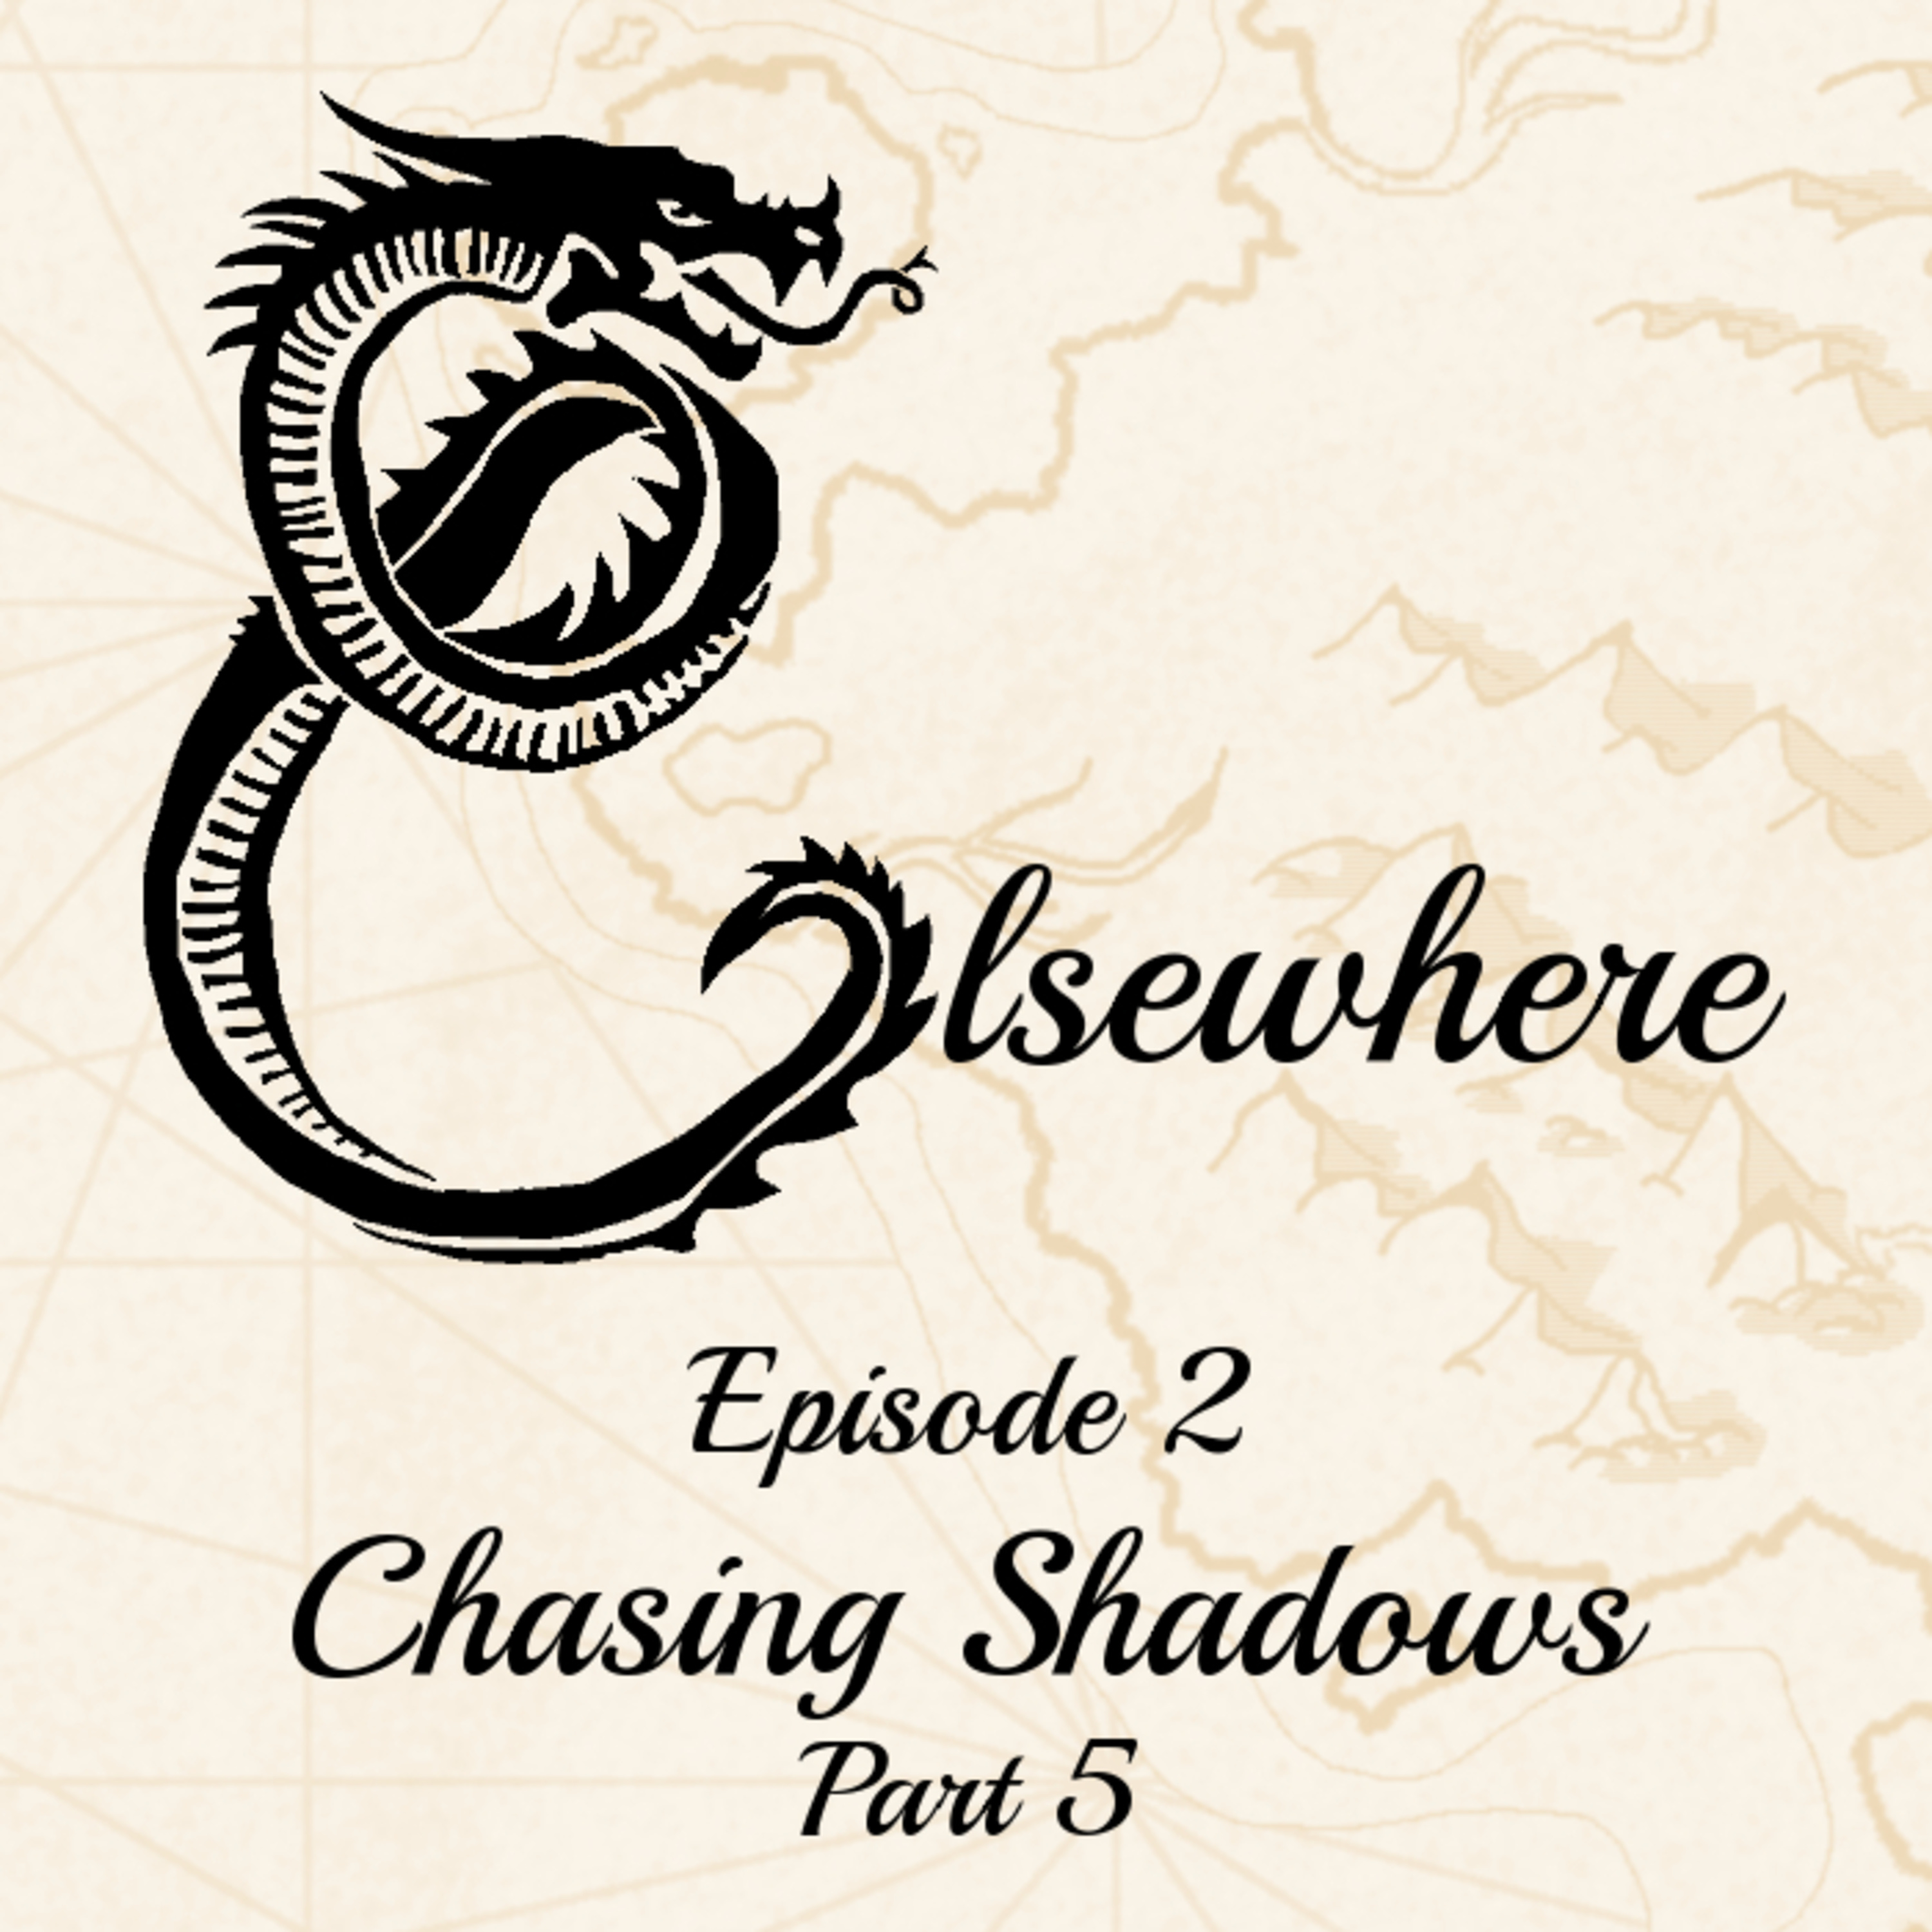 Elsewhere Episode 2 Part 5 Chasing Shadows